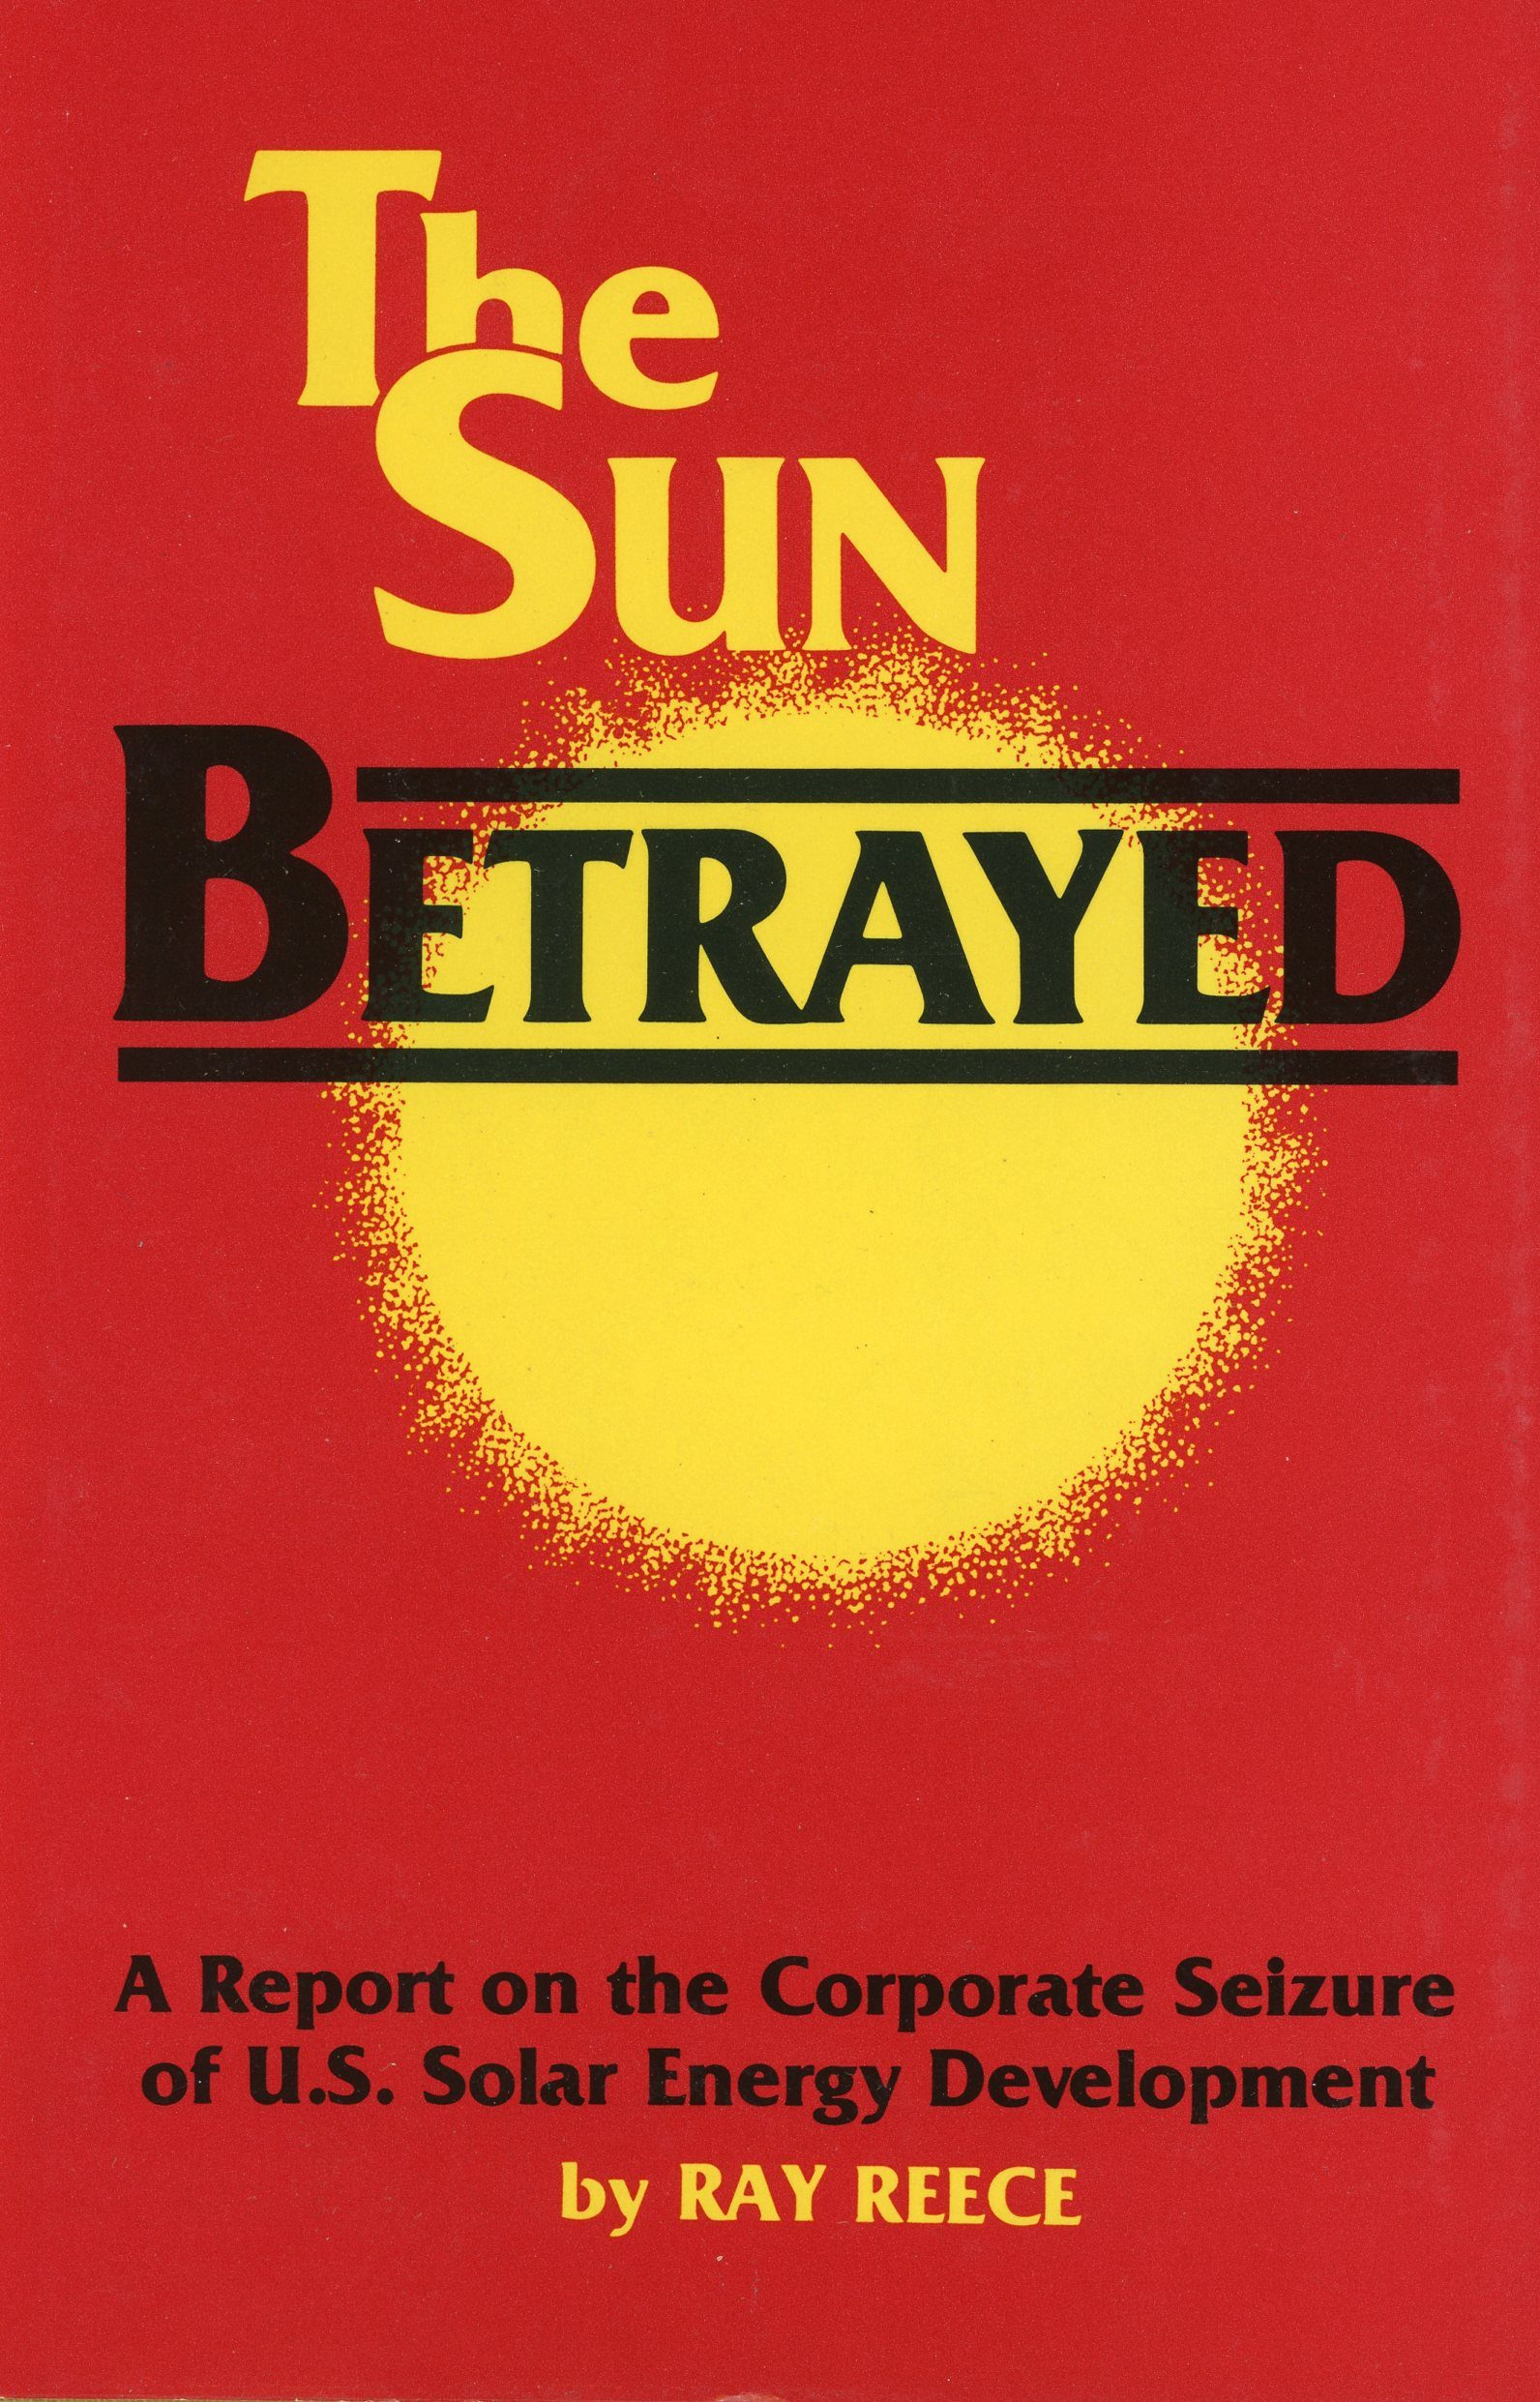 Photo of Cover of The Sun Betrayed Book